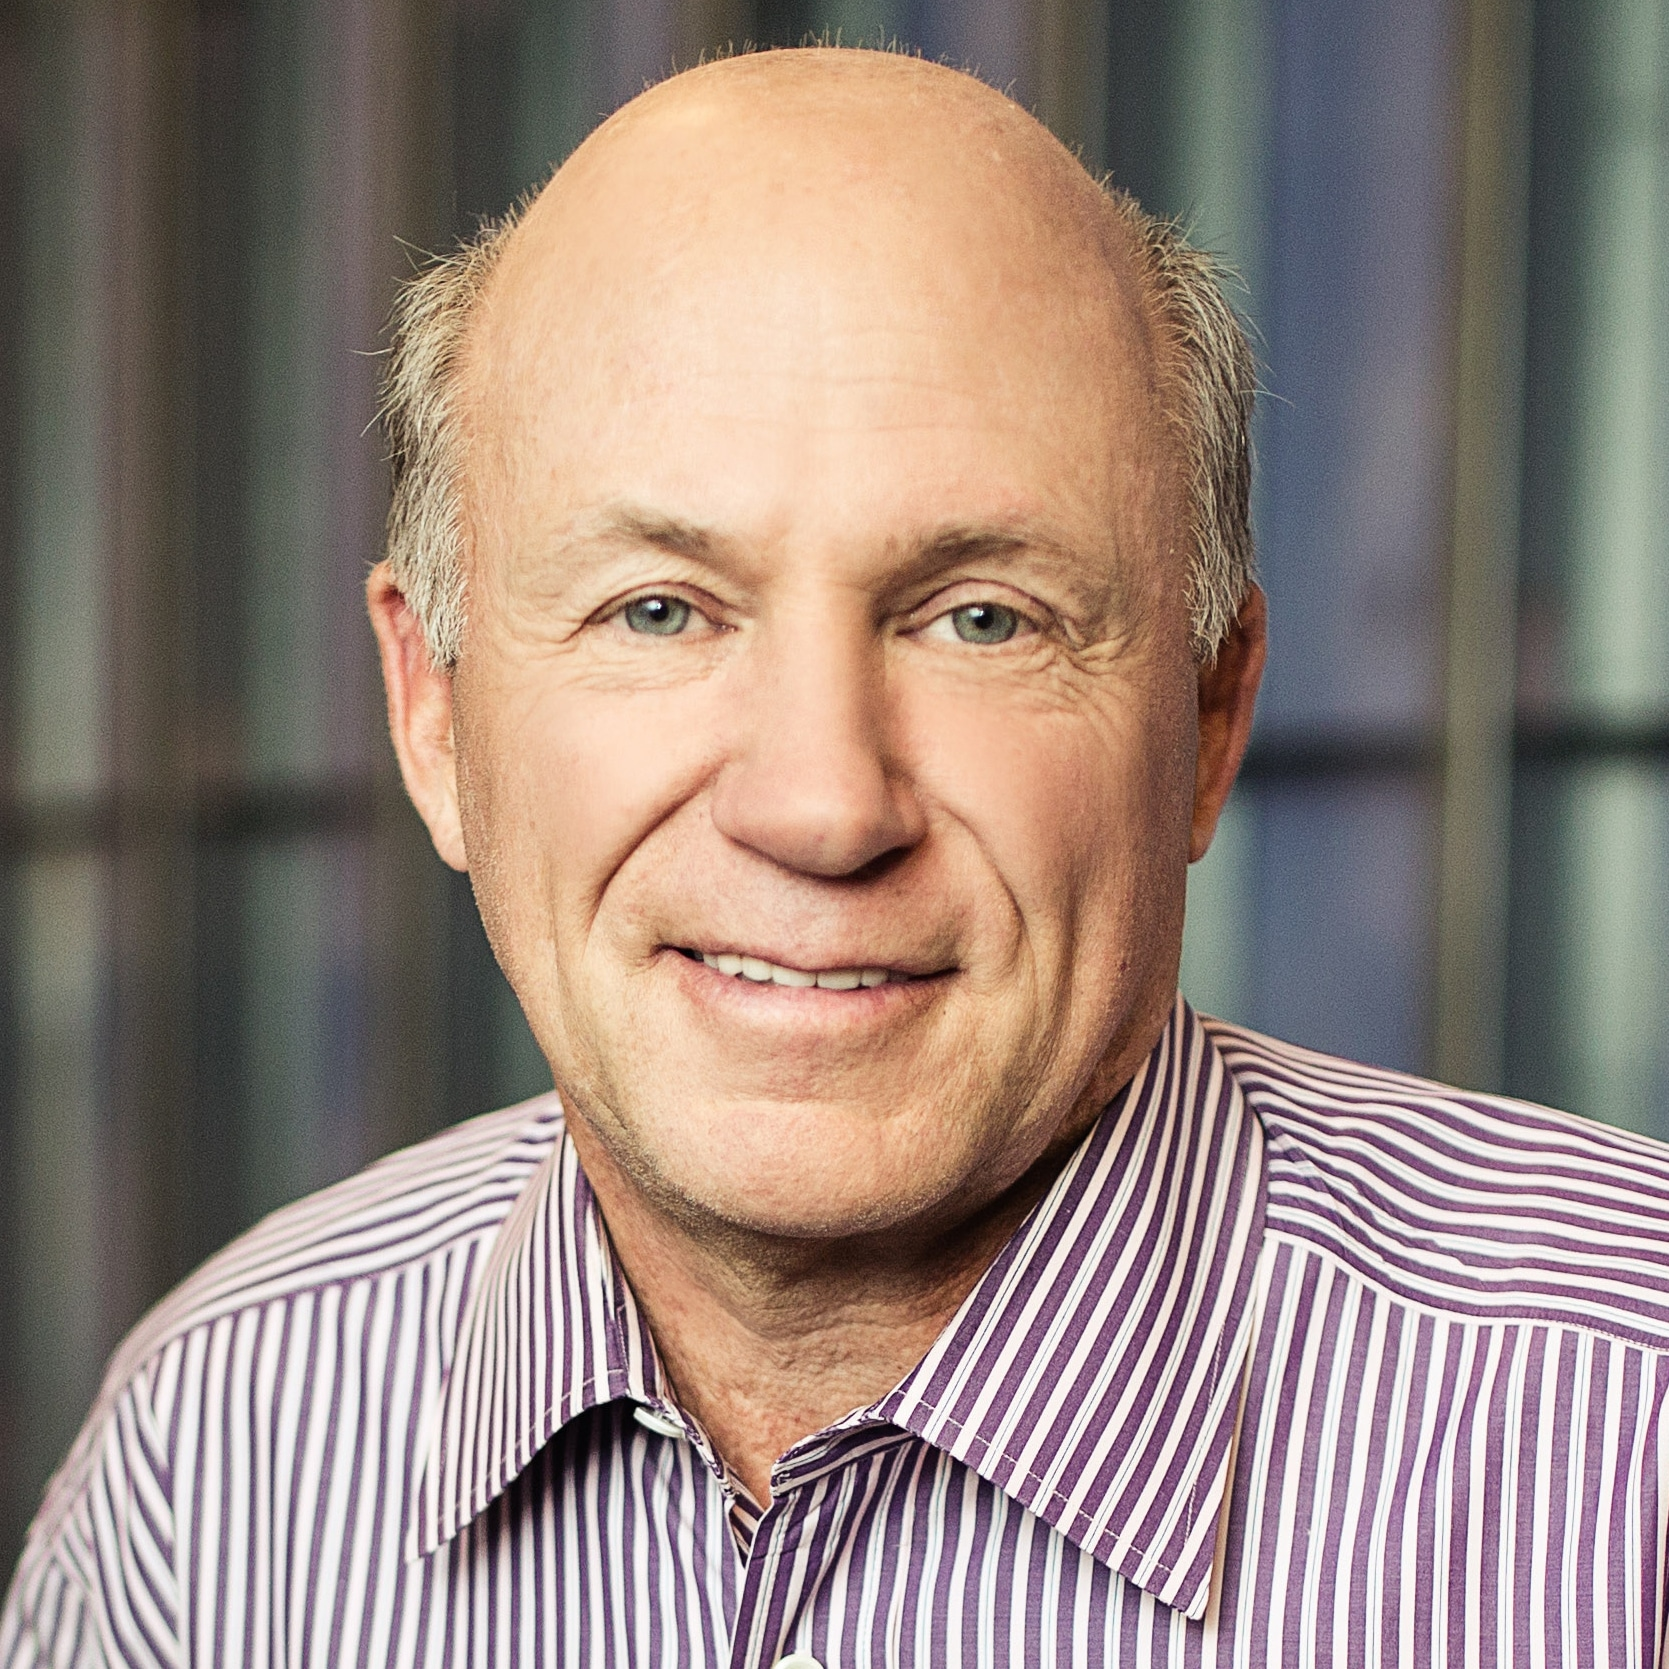 Dan Cathy, CEO Chick-fil-A